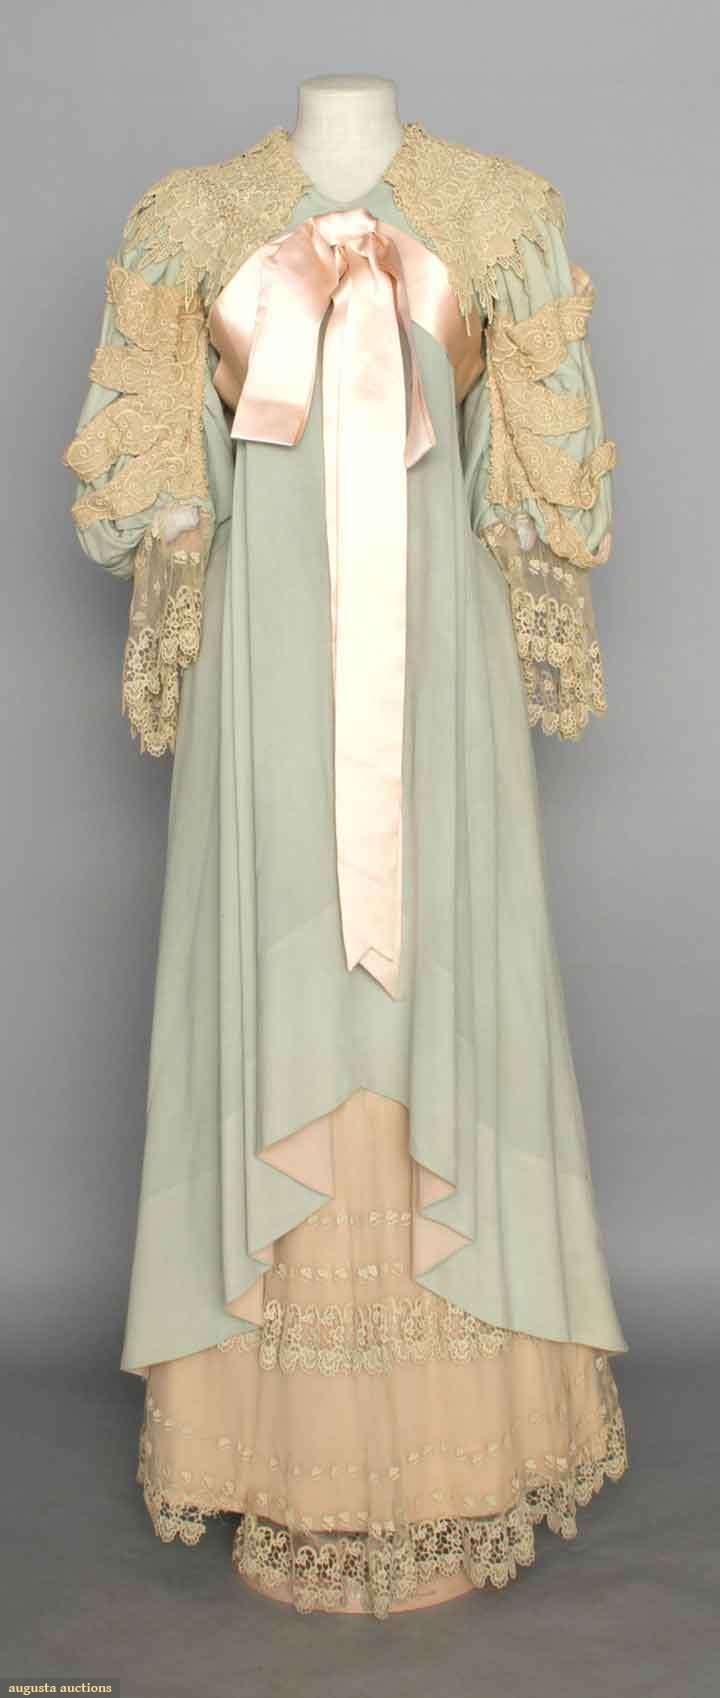 Cool  Edwardian Dress On Pinterest  Edwardian Fashion Edwardian Clothing